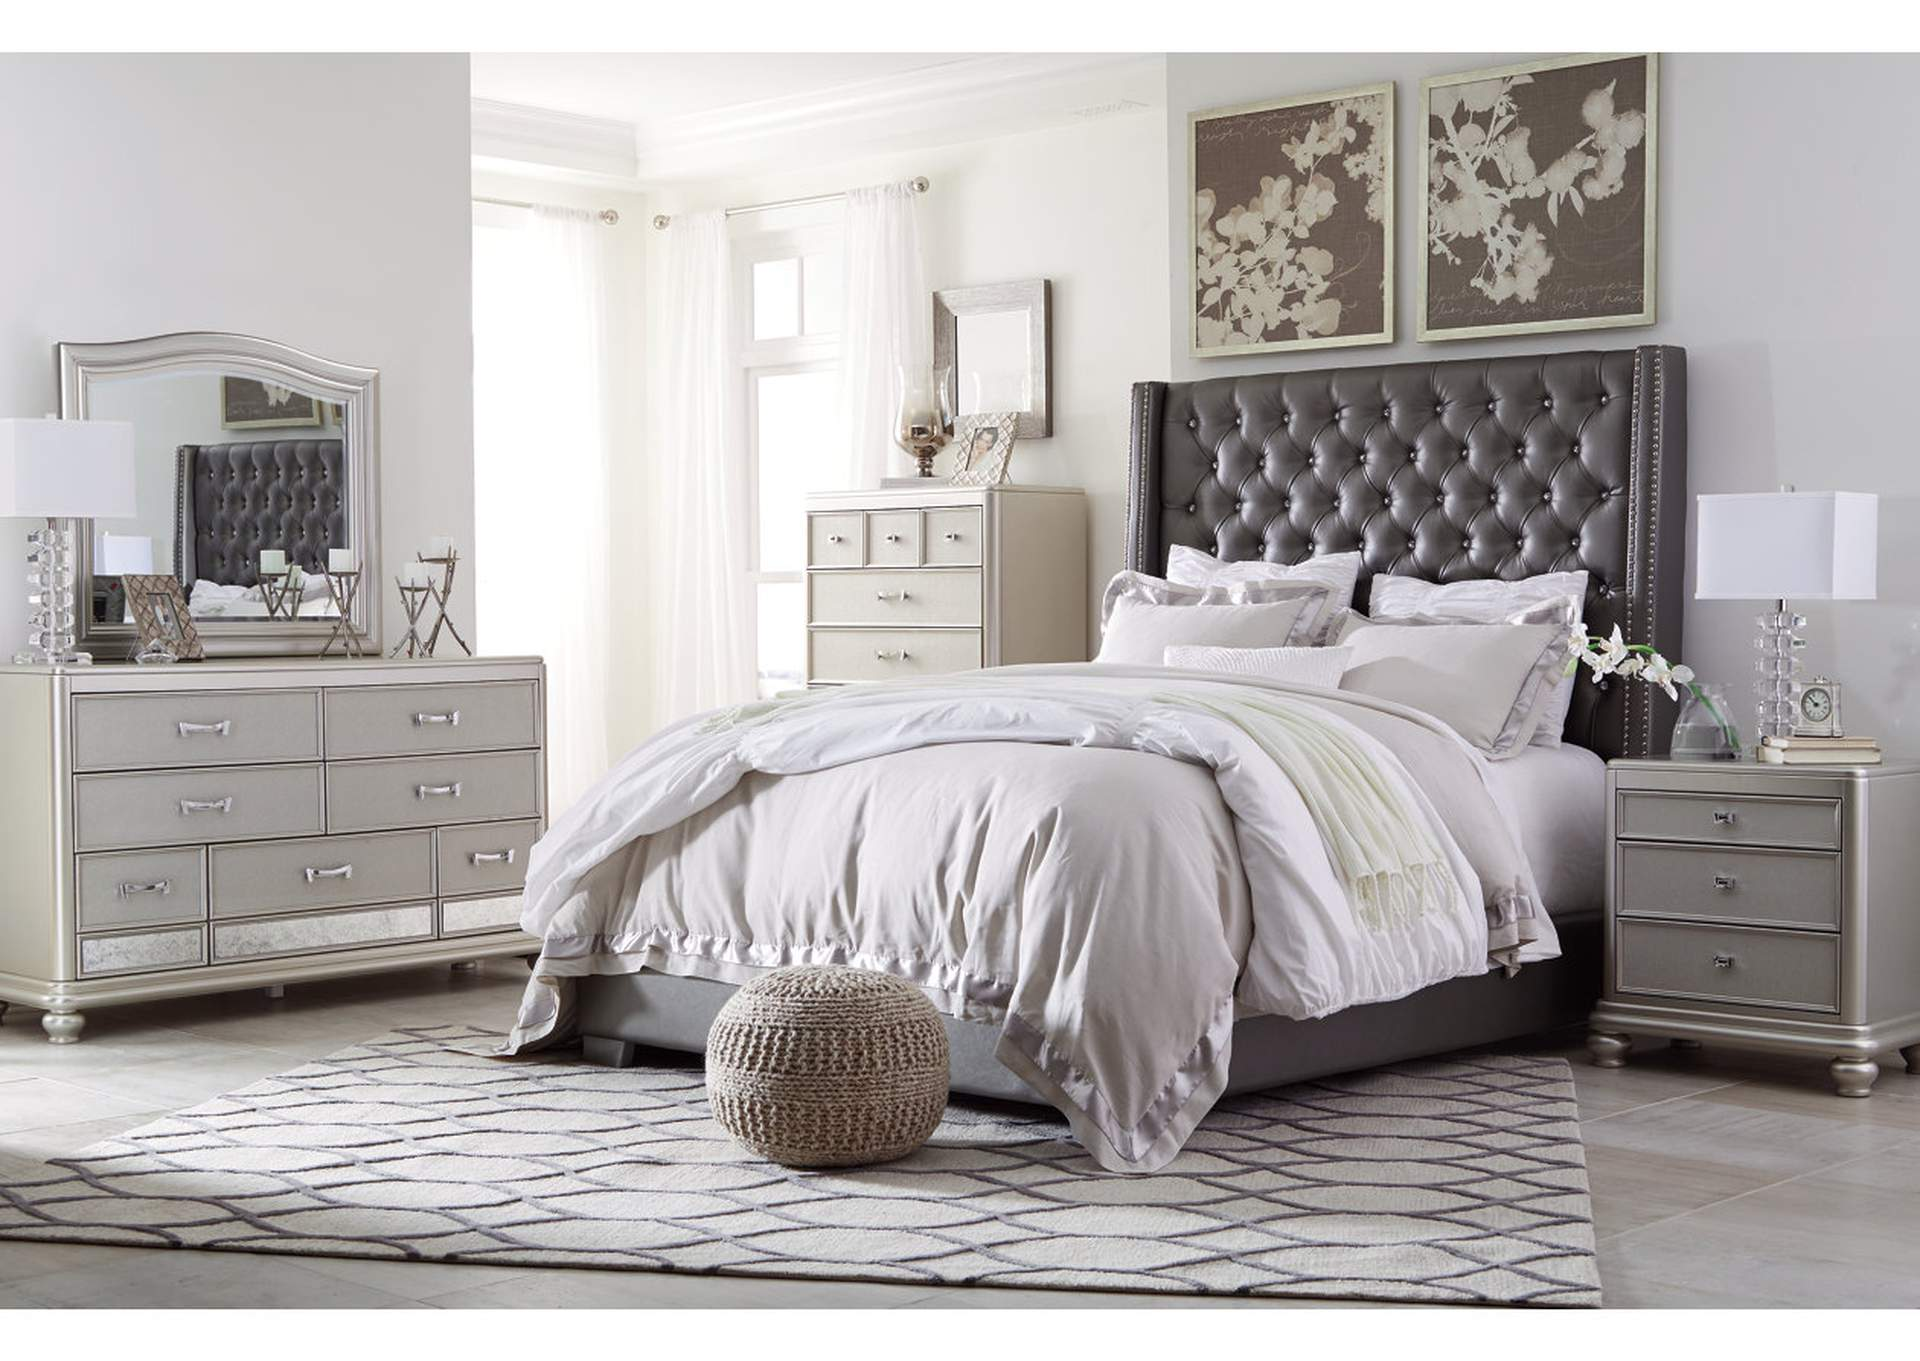 Coralayne Gray California King Upholstered Bed w/Dresser and Mirror,Signature Design By Ashley